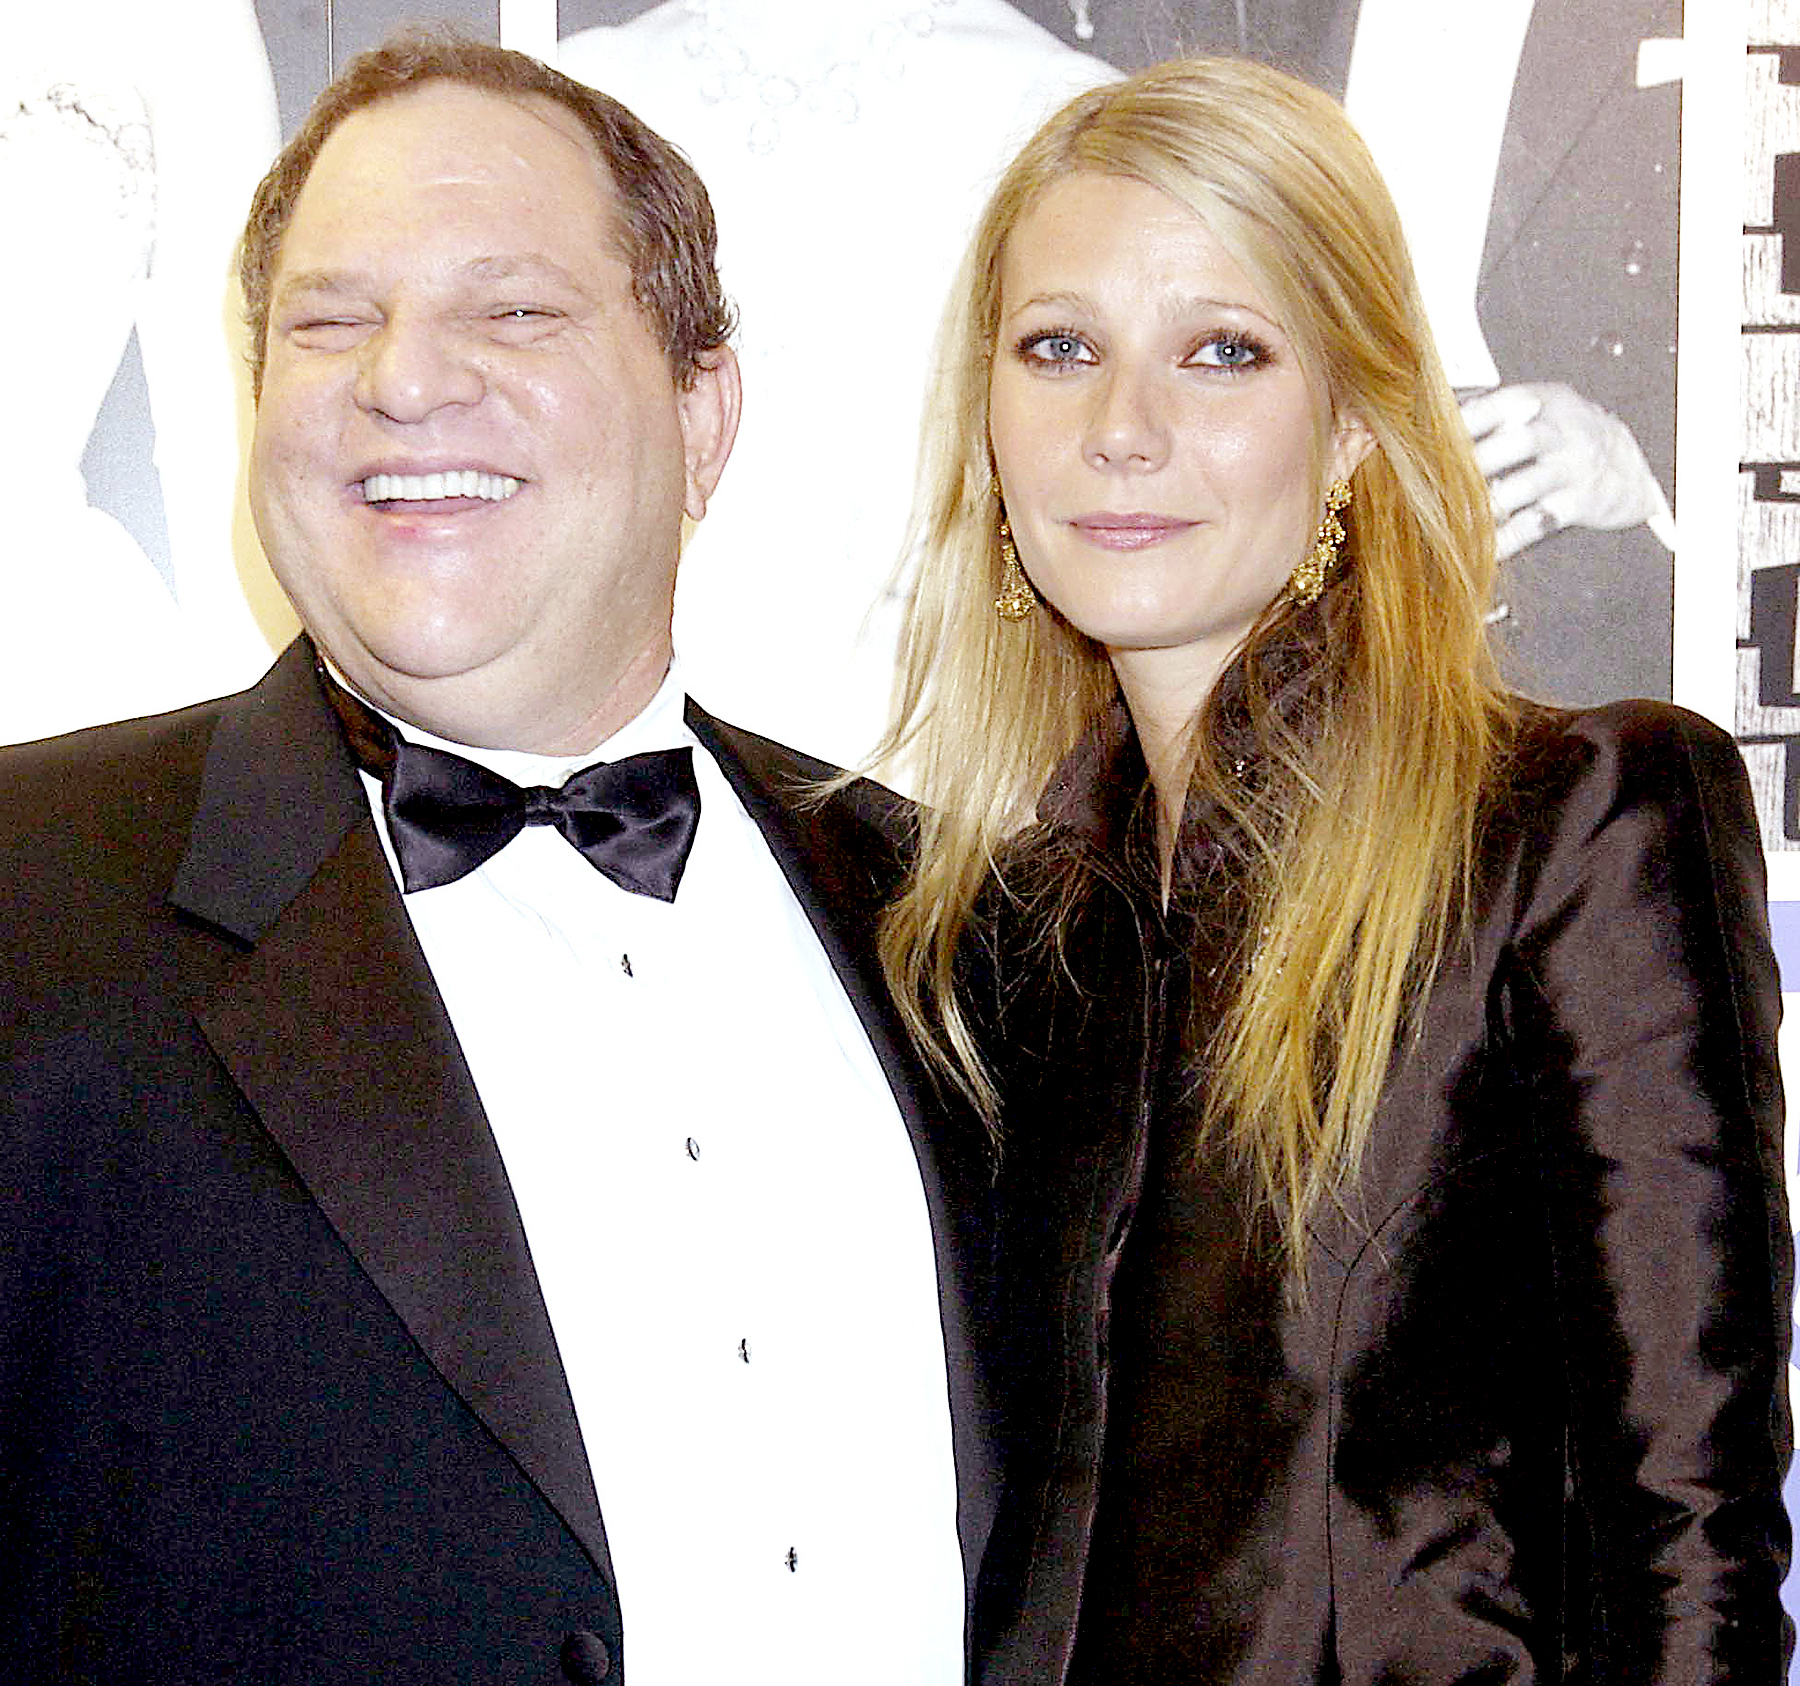 Gwyneth Paltrow with Harvey Weinstein at The 50th Anniversary Gala Of The National Film Theatre, at The National Film Theatre, London in 2002.